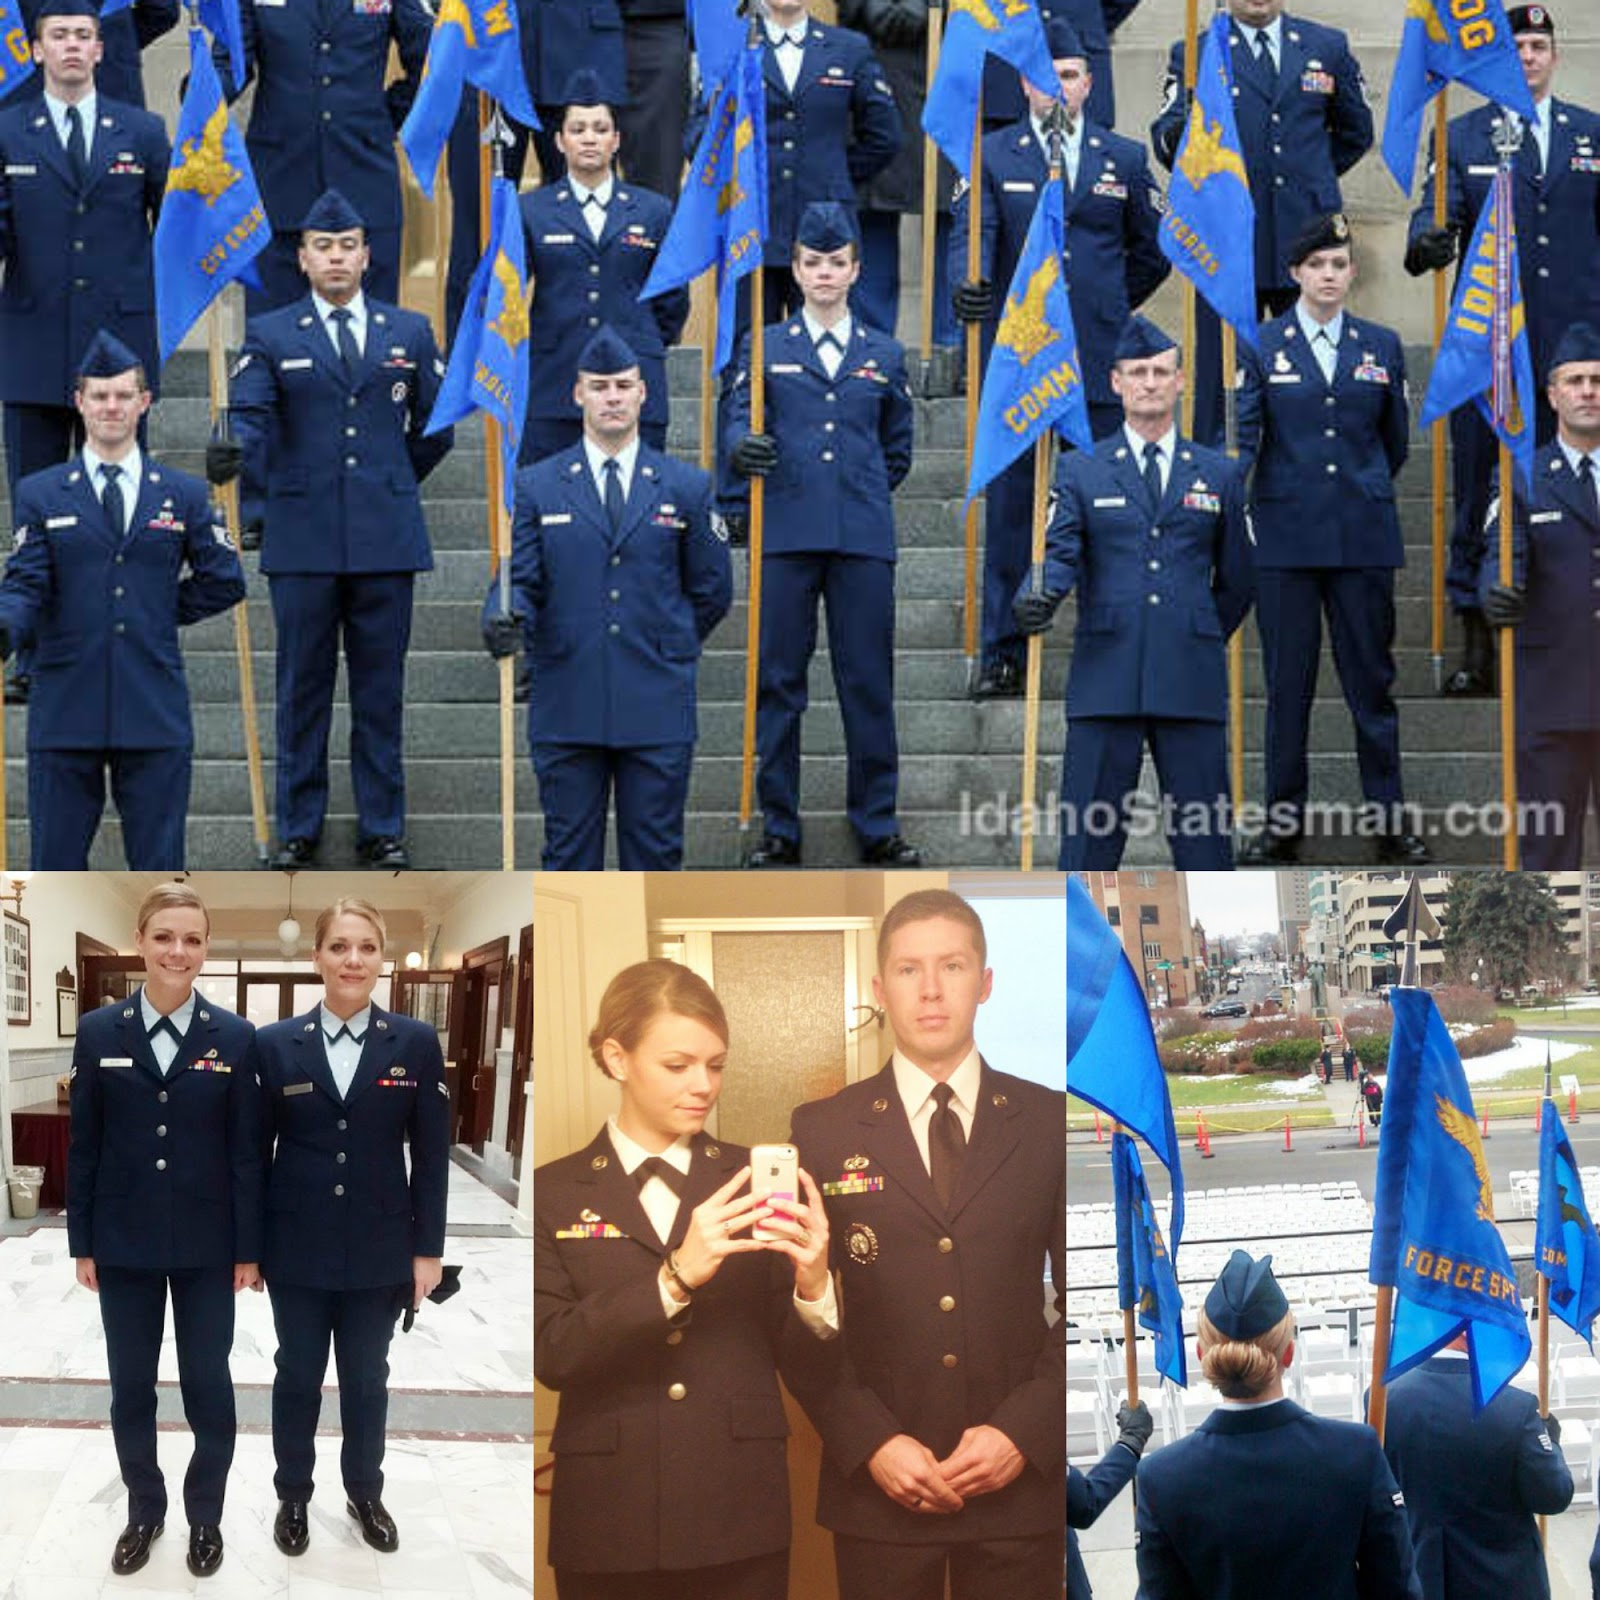 Something Greater Than Yourself, What an honor it is to serve in the United States Air Force and Air National Guard